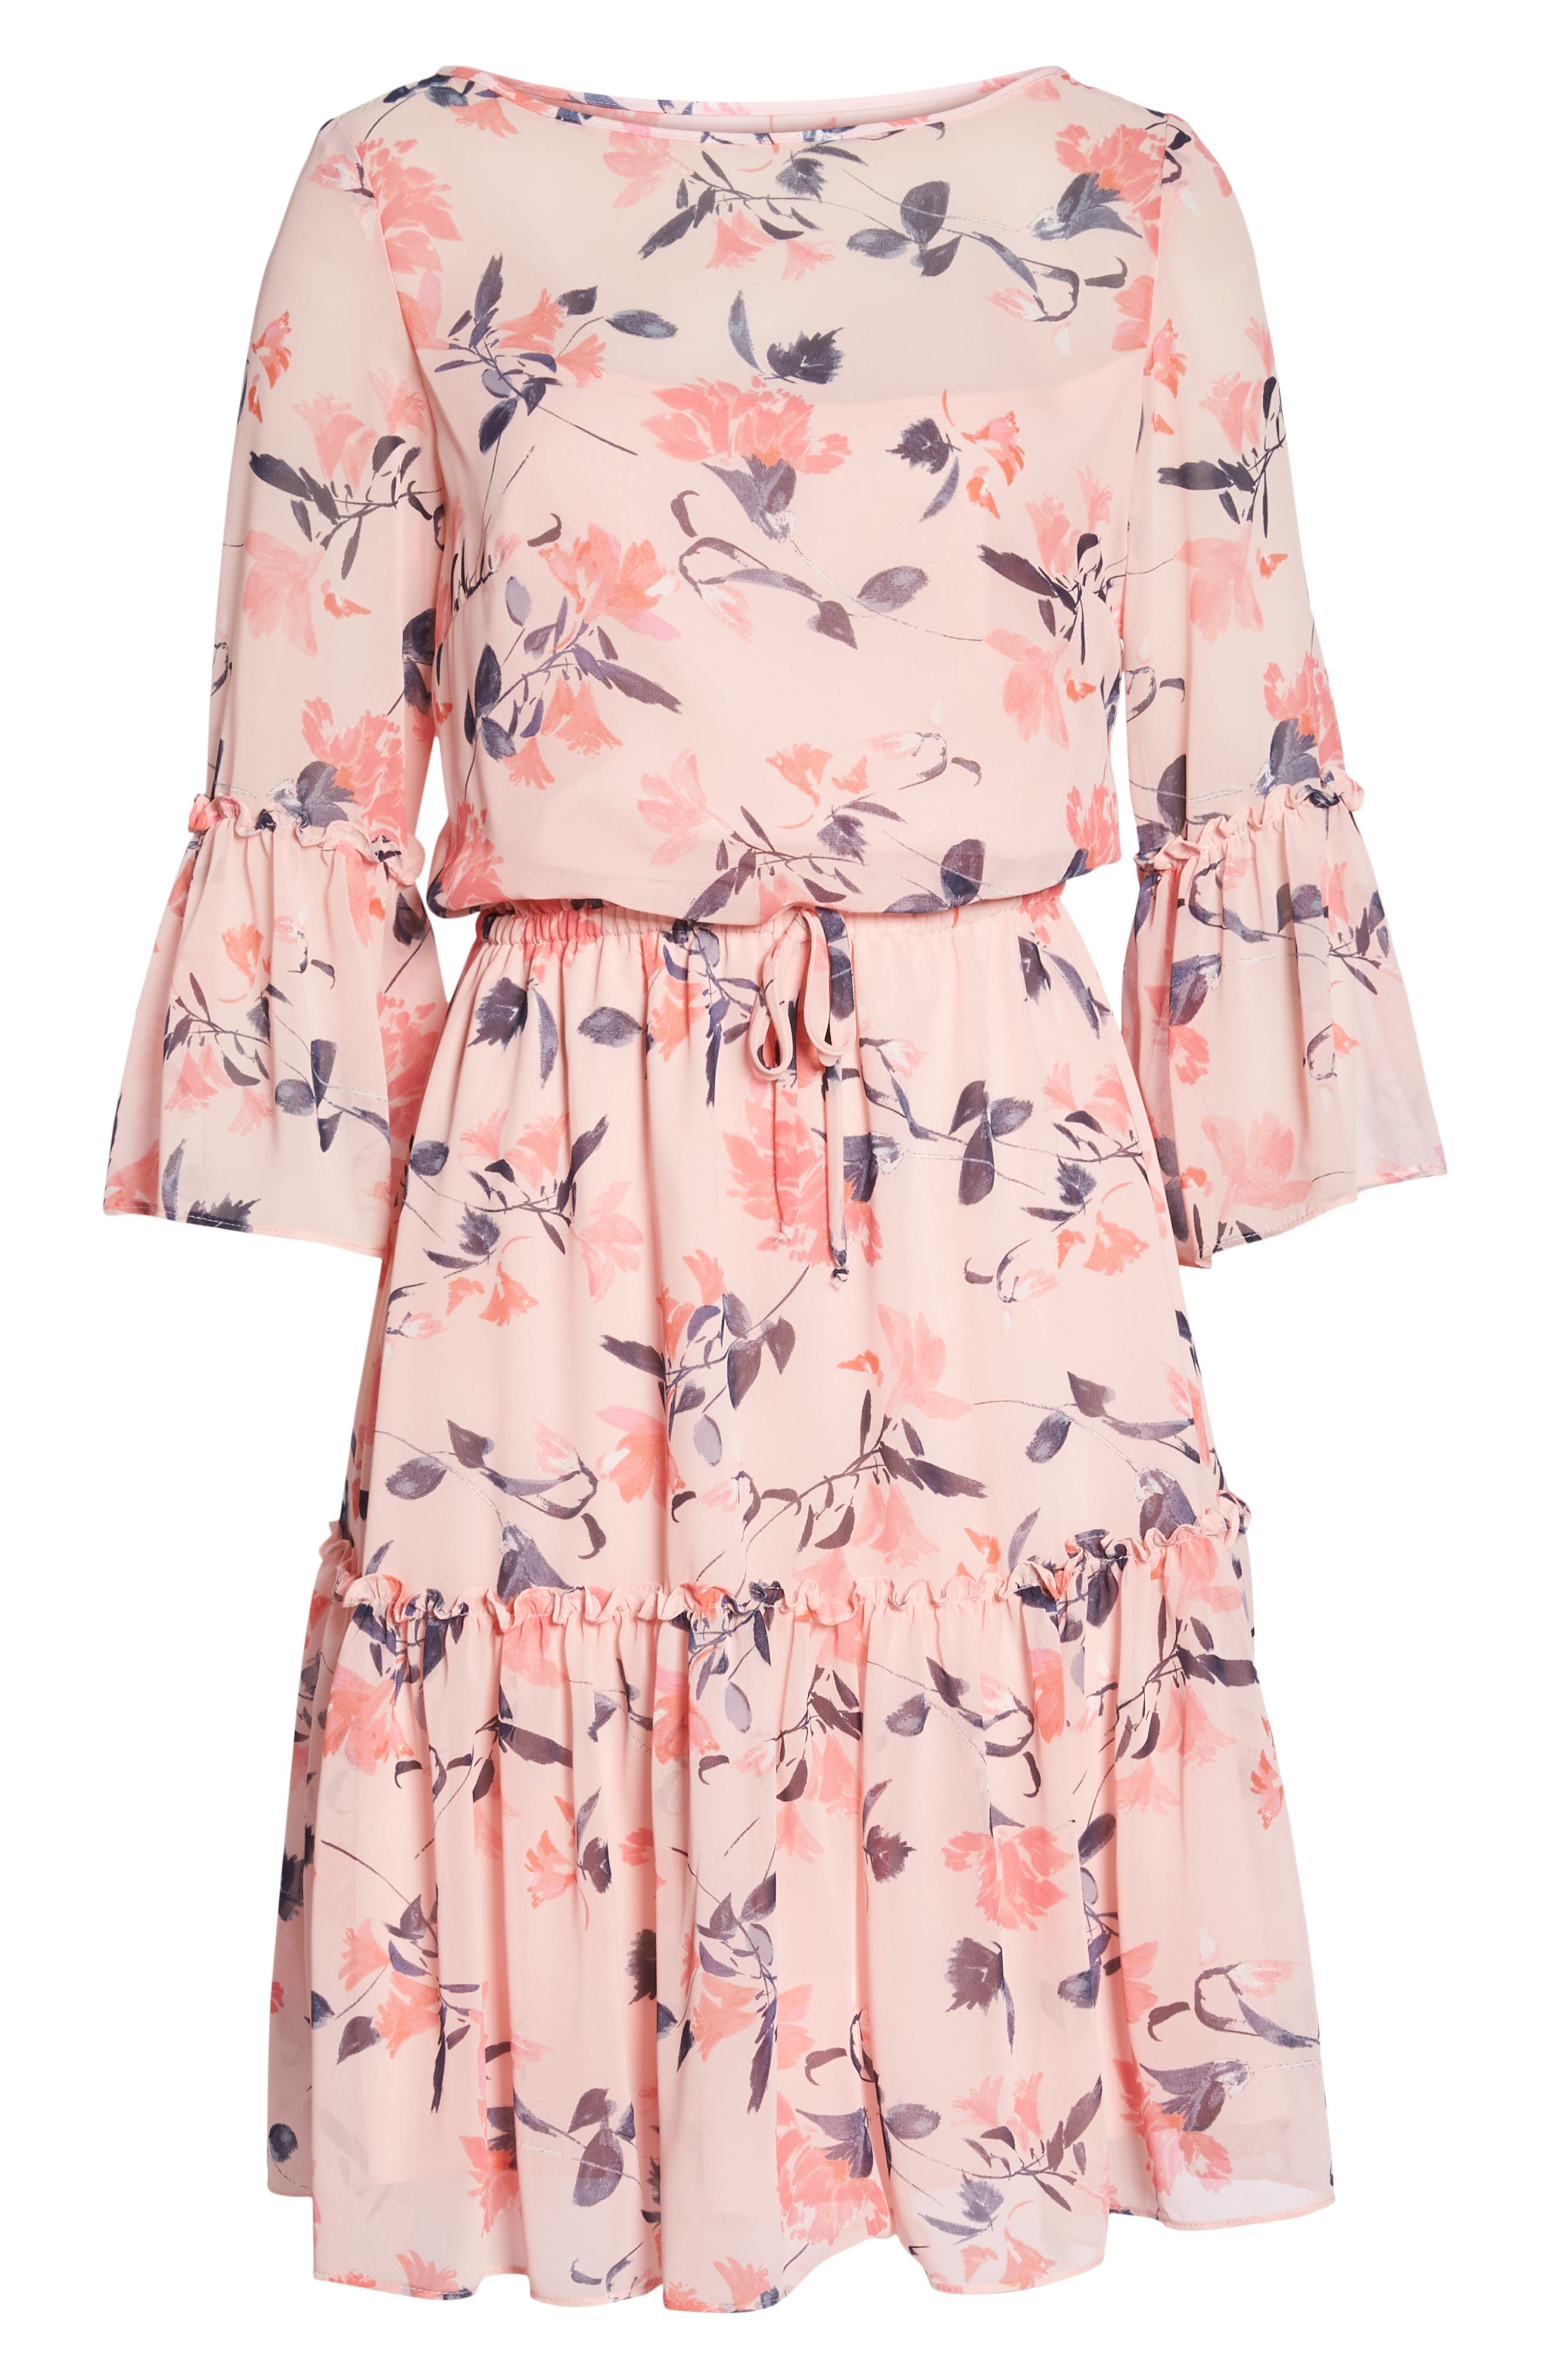 ELIZA J,                             Floral Bell Sleeve Chiffon Dress,                             Alternate thumbnail 7, color,                             684